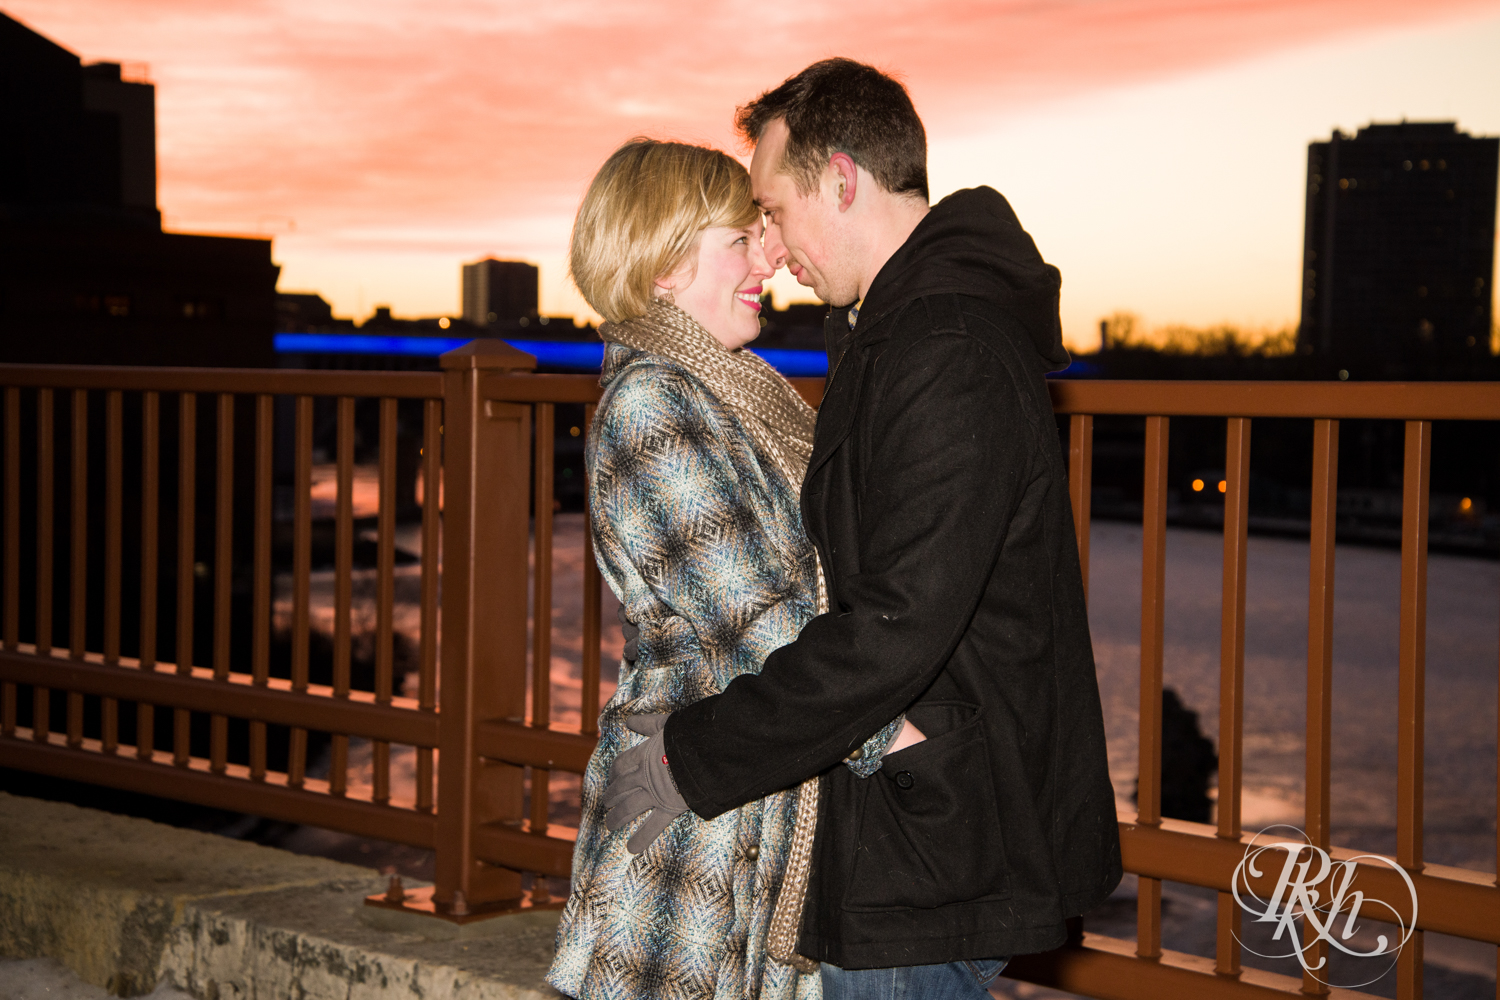 Kate & Kyle - Minnesota Sunrise Engagement Photography - Stone Arch Bridge - RKH Images (5 of 18).jpg